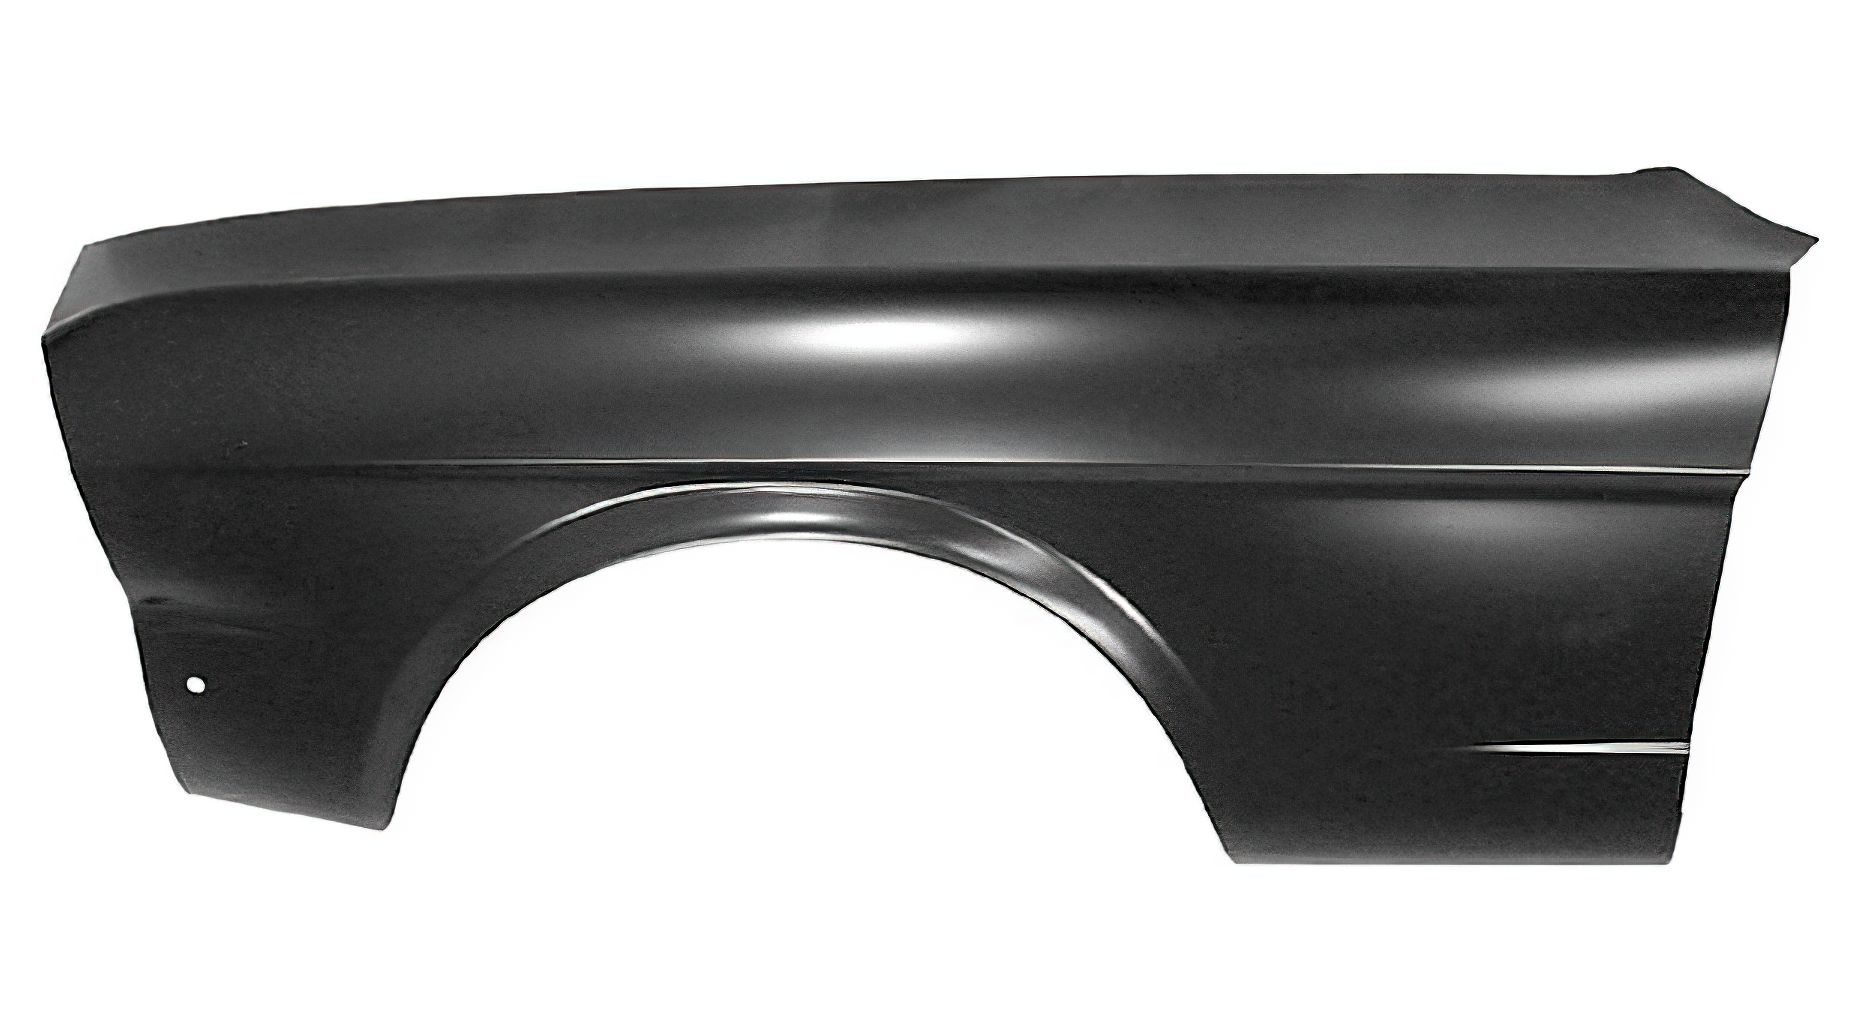 Front Fender for a Mustang